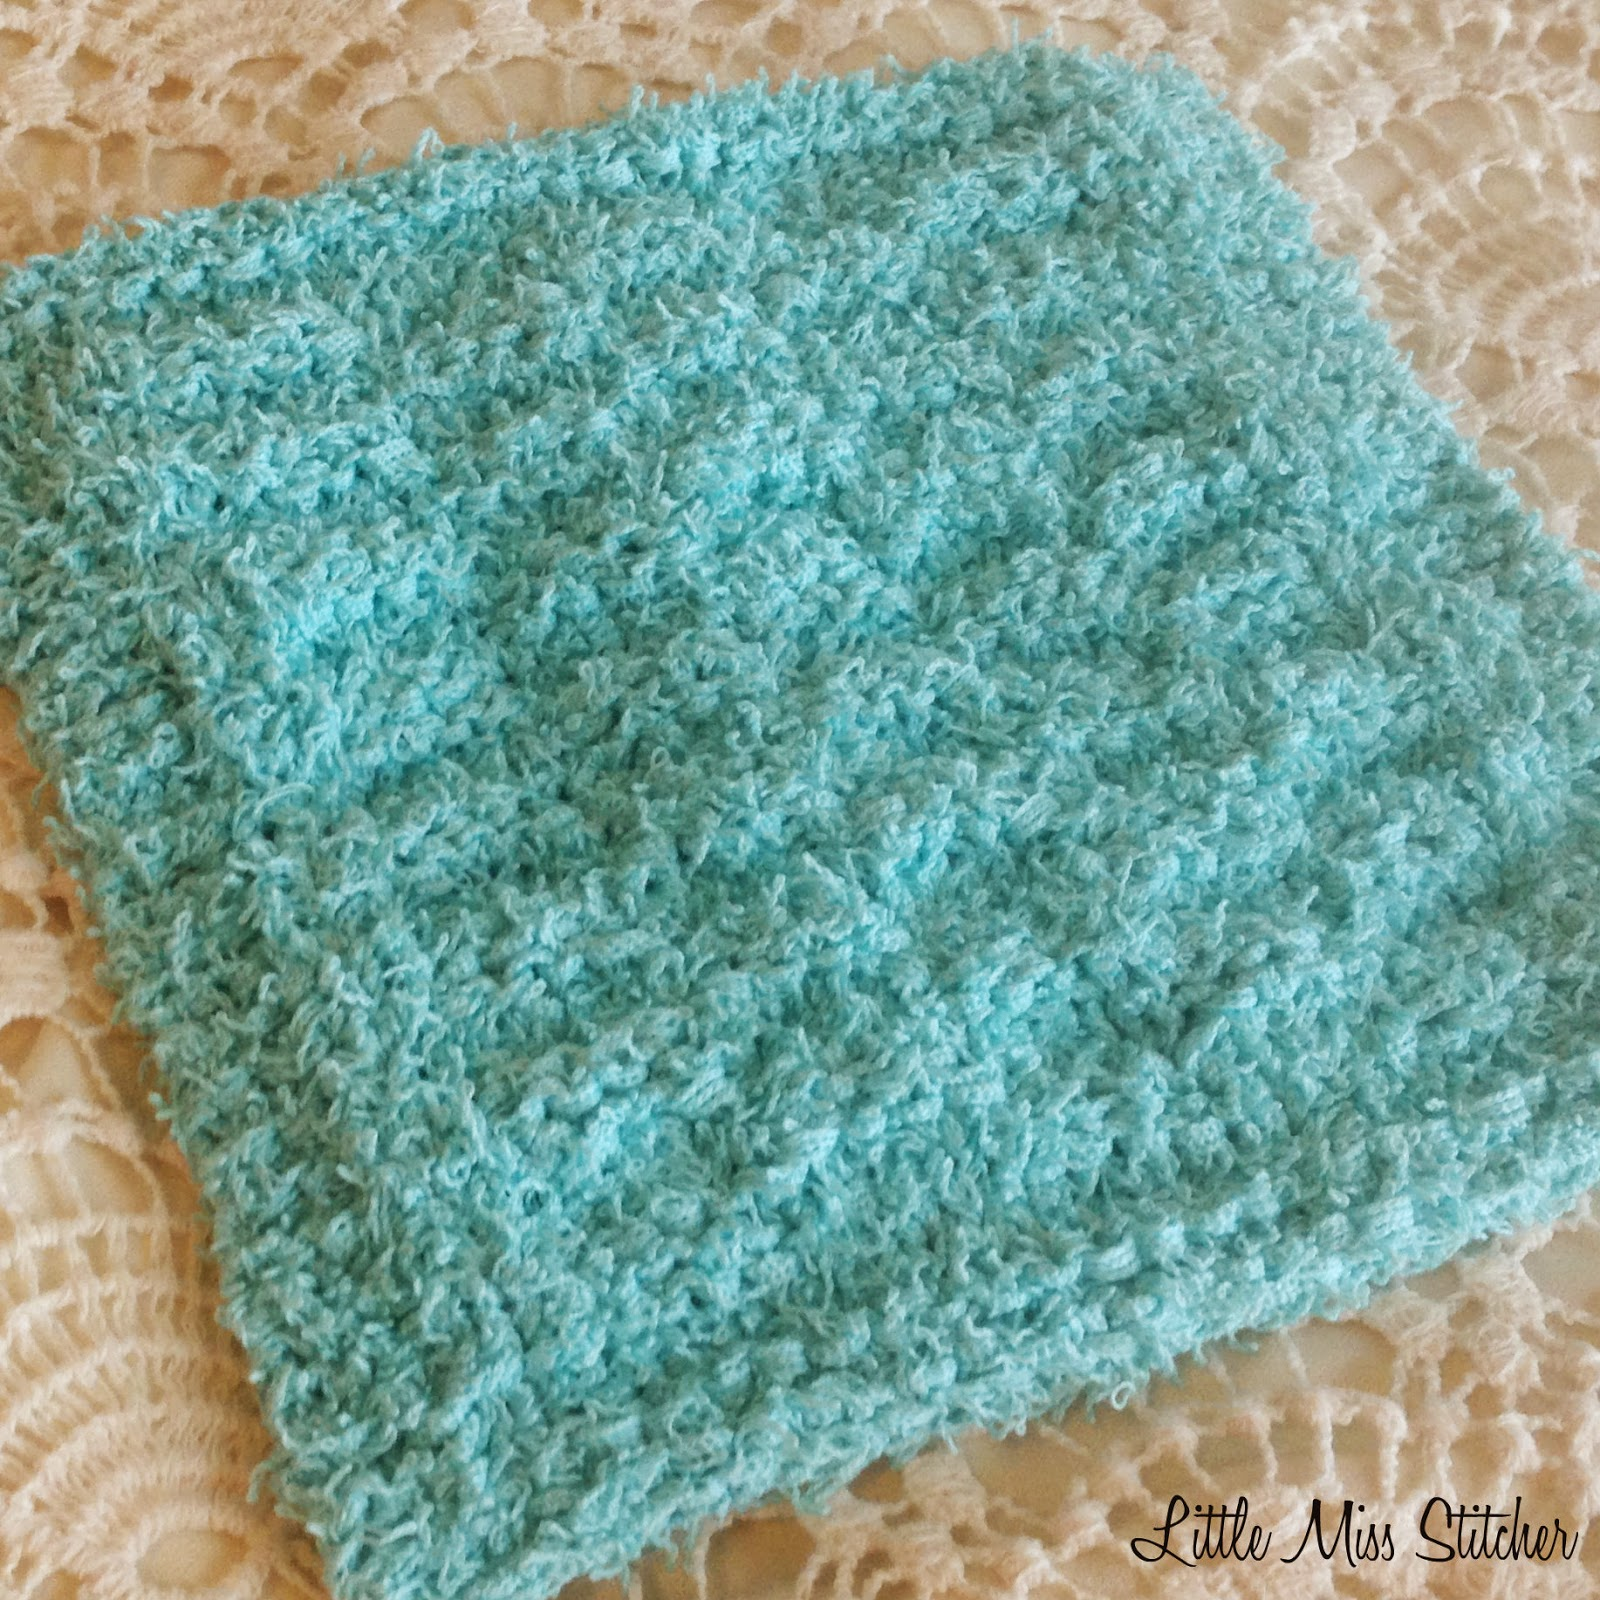 Free Knitting Pattern Butterfly Dishcloth : Little Miss Stitcher: 5 Free Knit Dishcloth Patterns